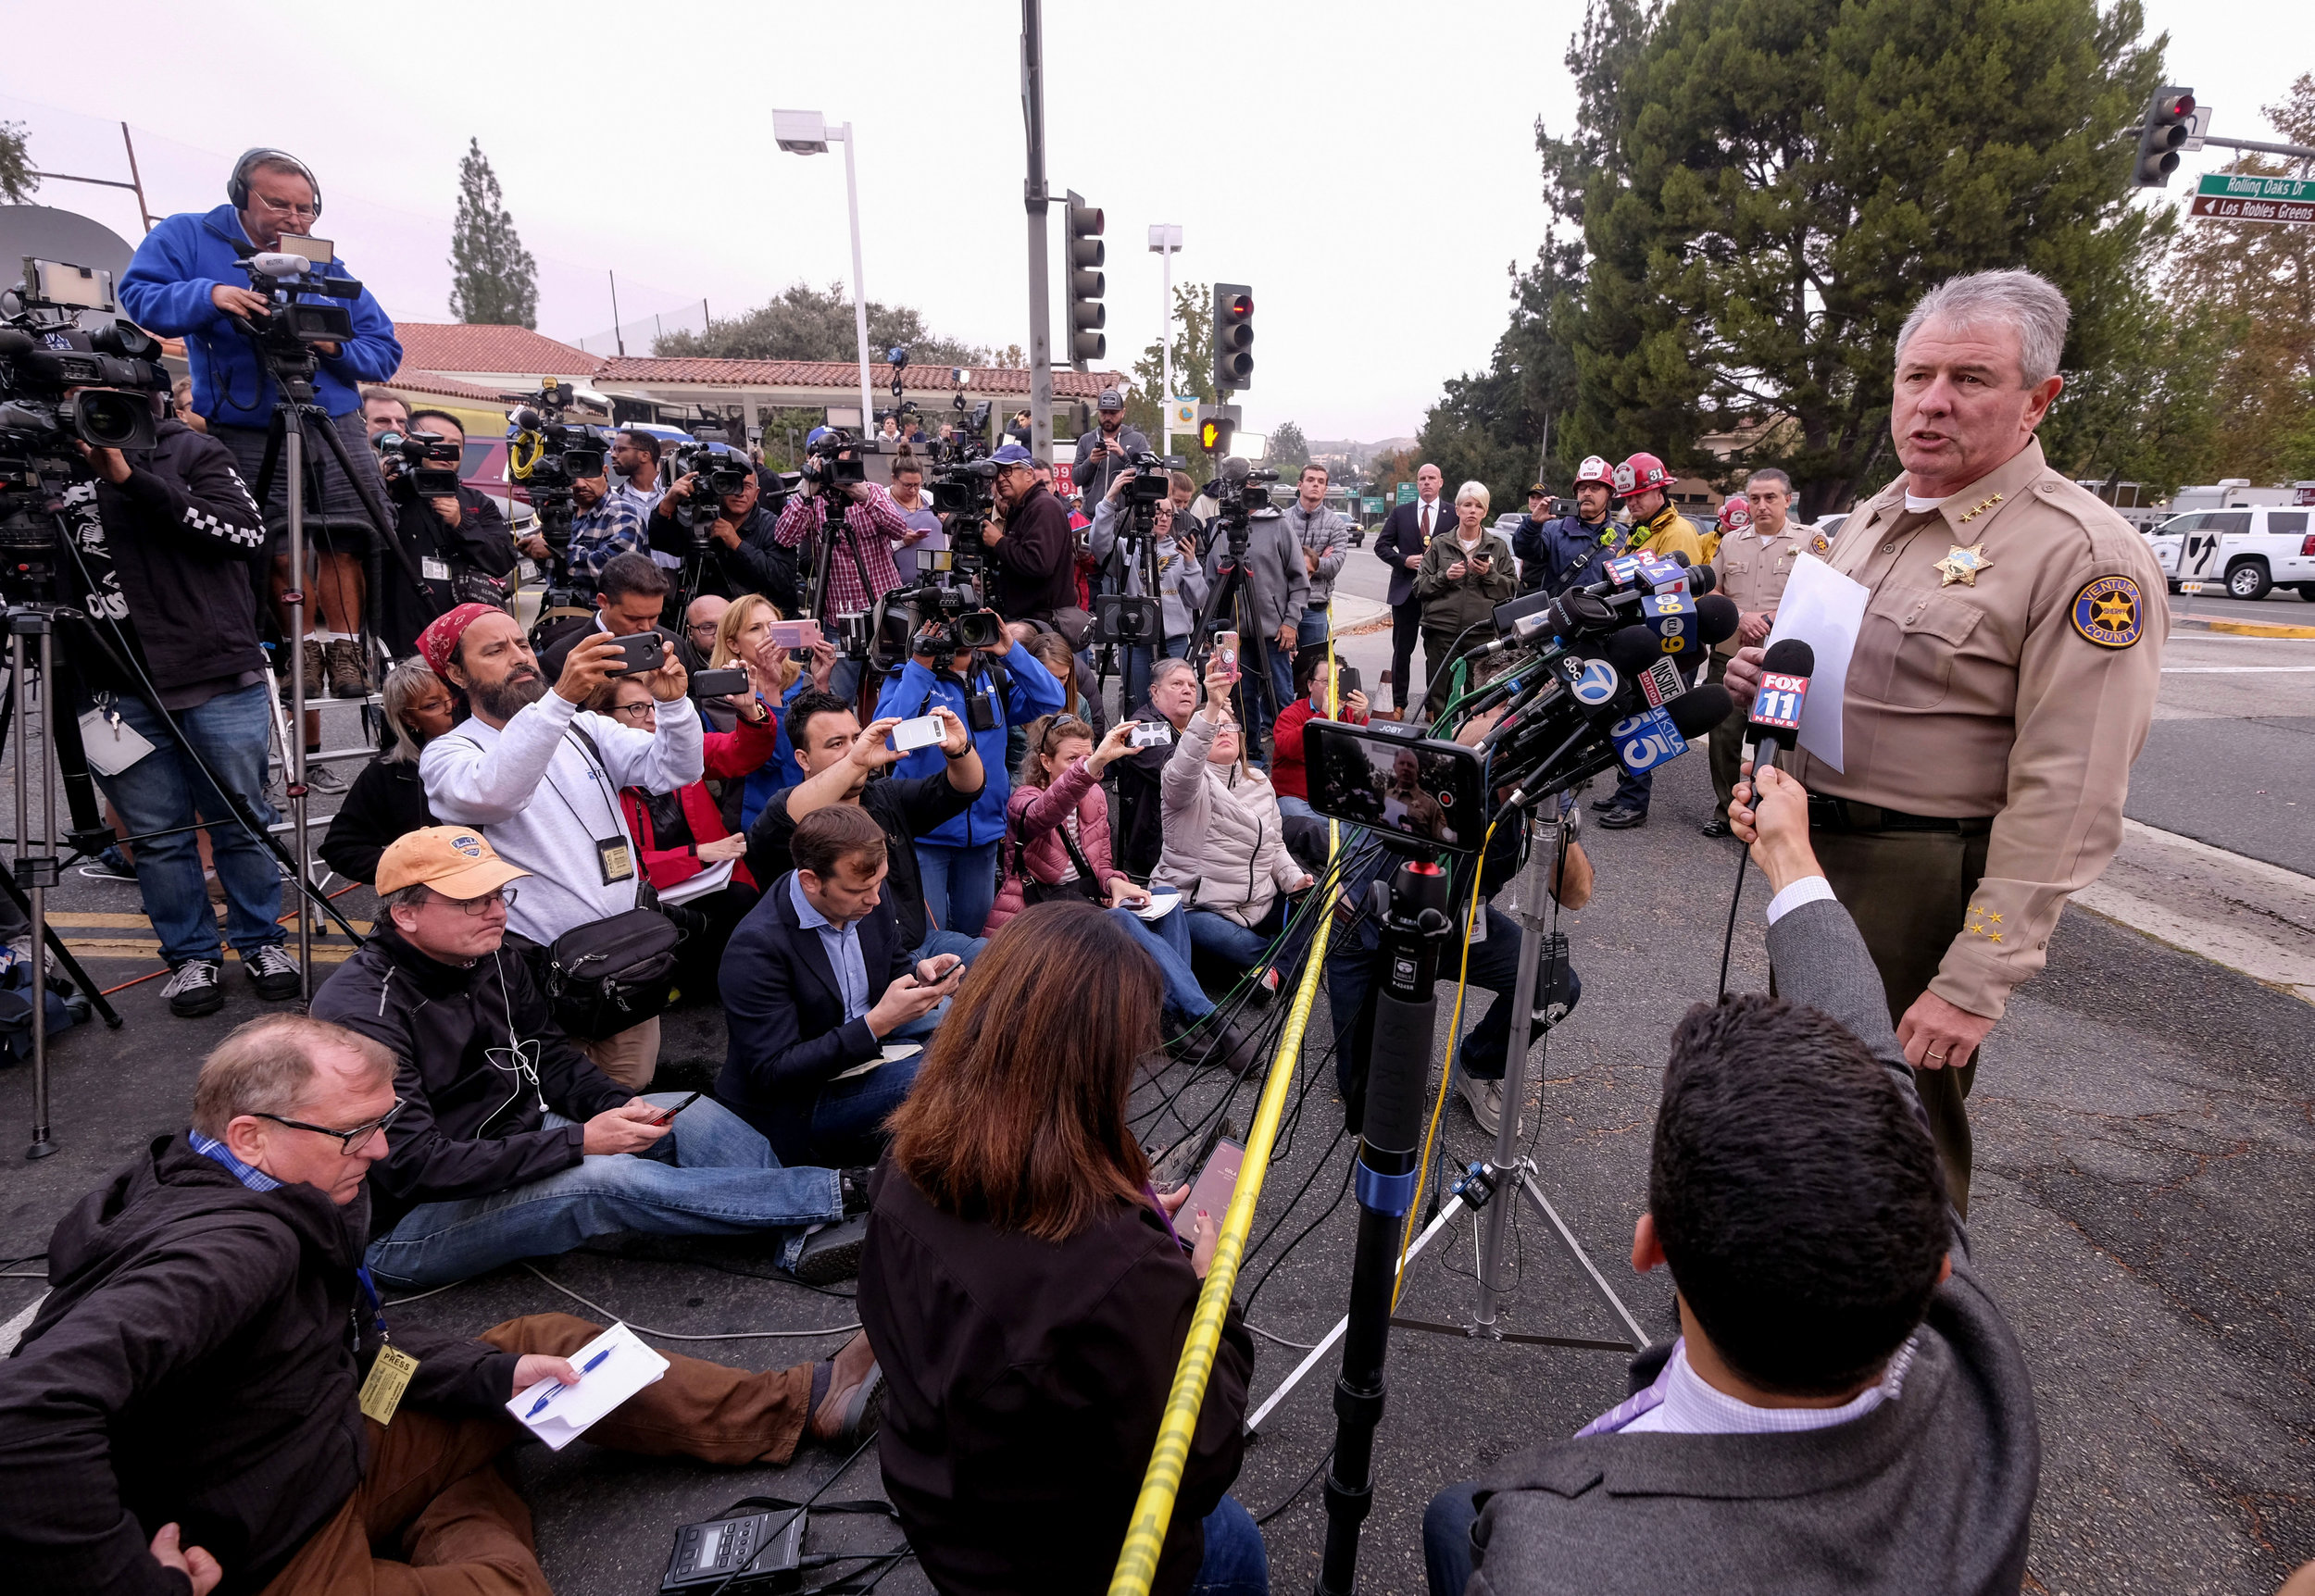 Ventura County Sheriff Geoff Dean speaks during a press conference after a mass shooting at a bar in Thousand Oaks, California, U.S. November 8, 2018.